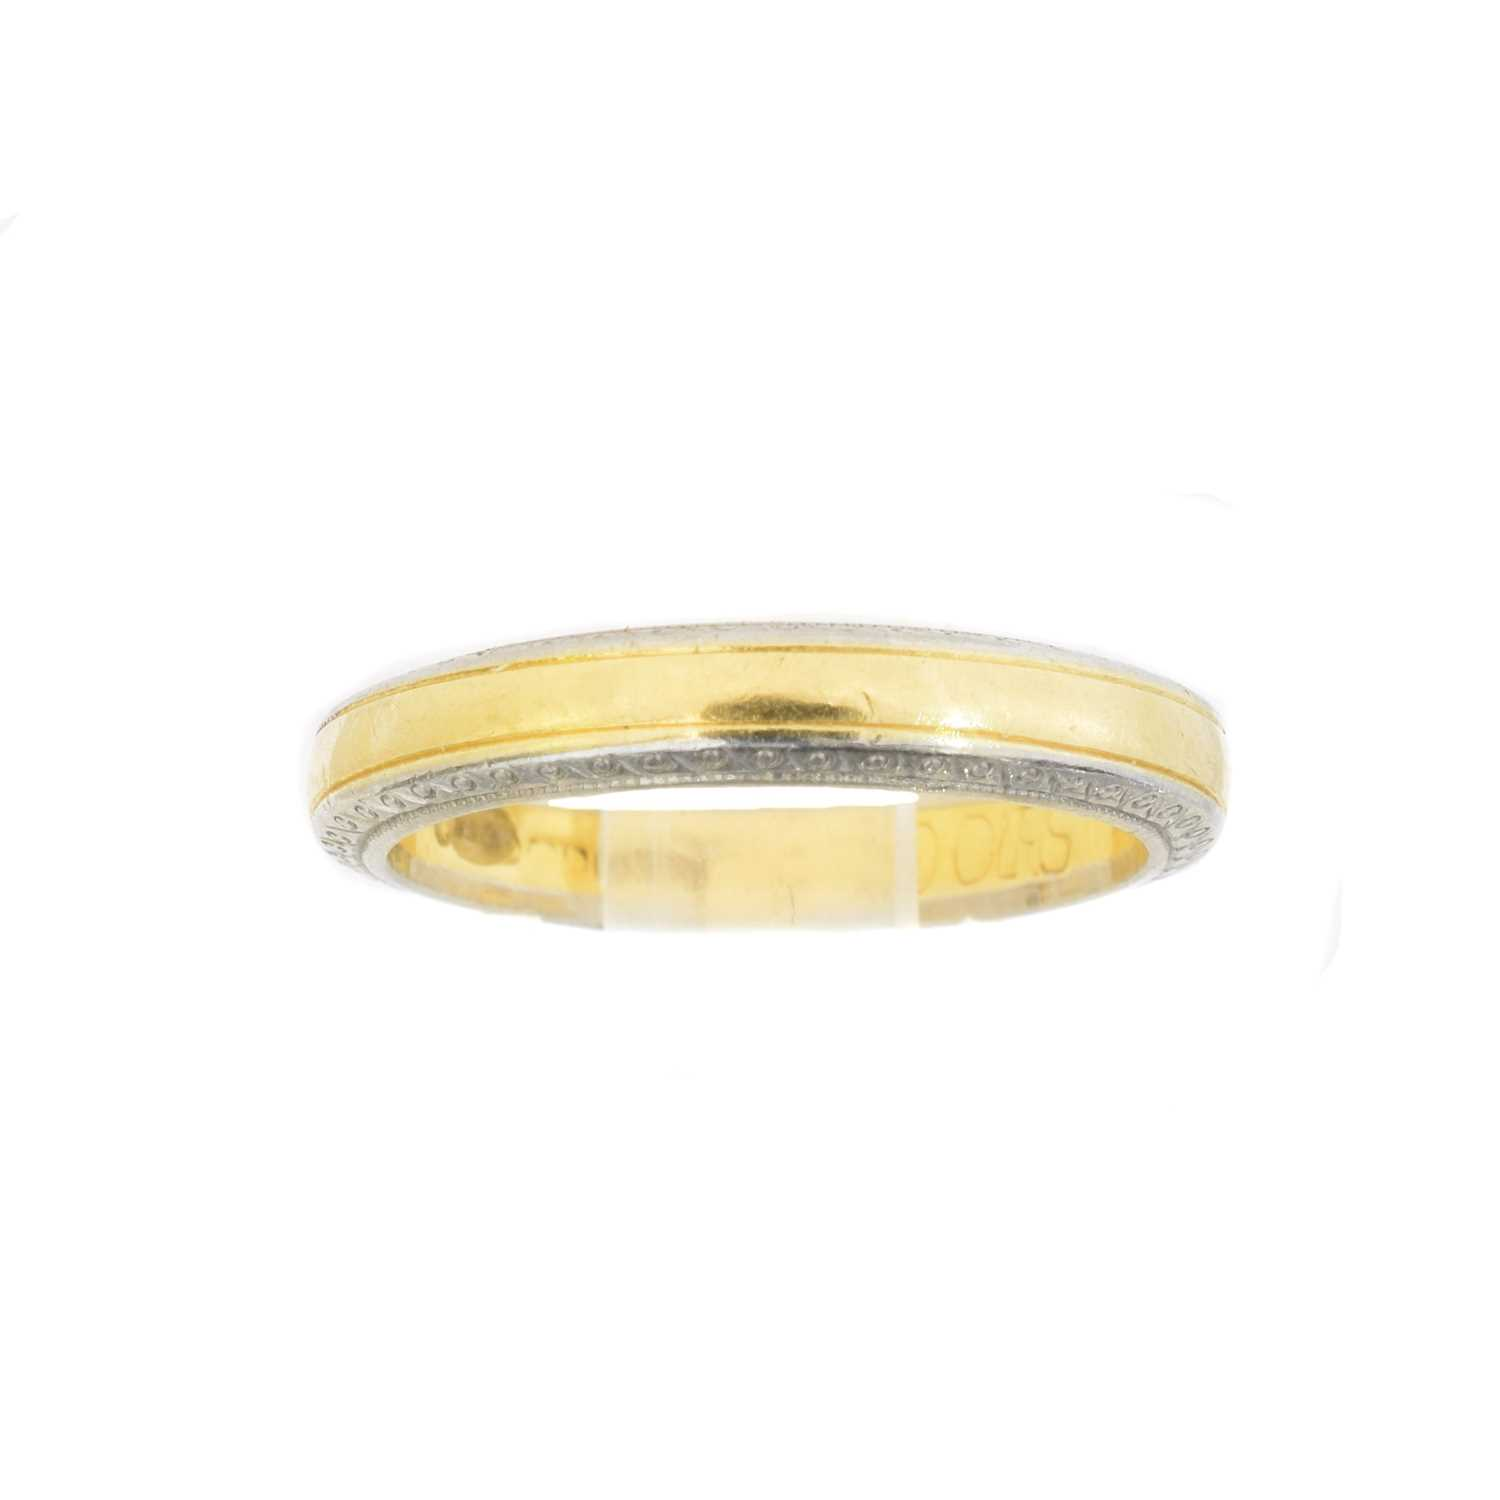 Lot An 18ct gold band ring by Boodles